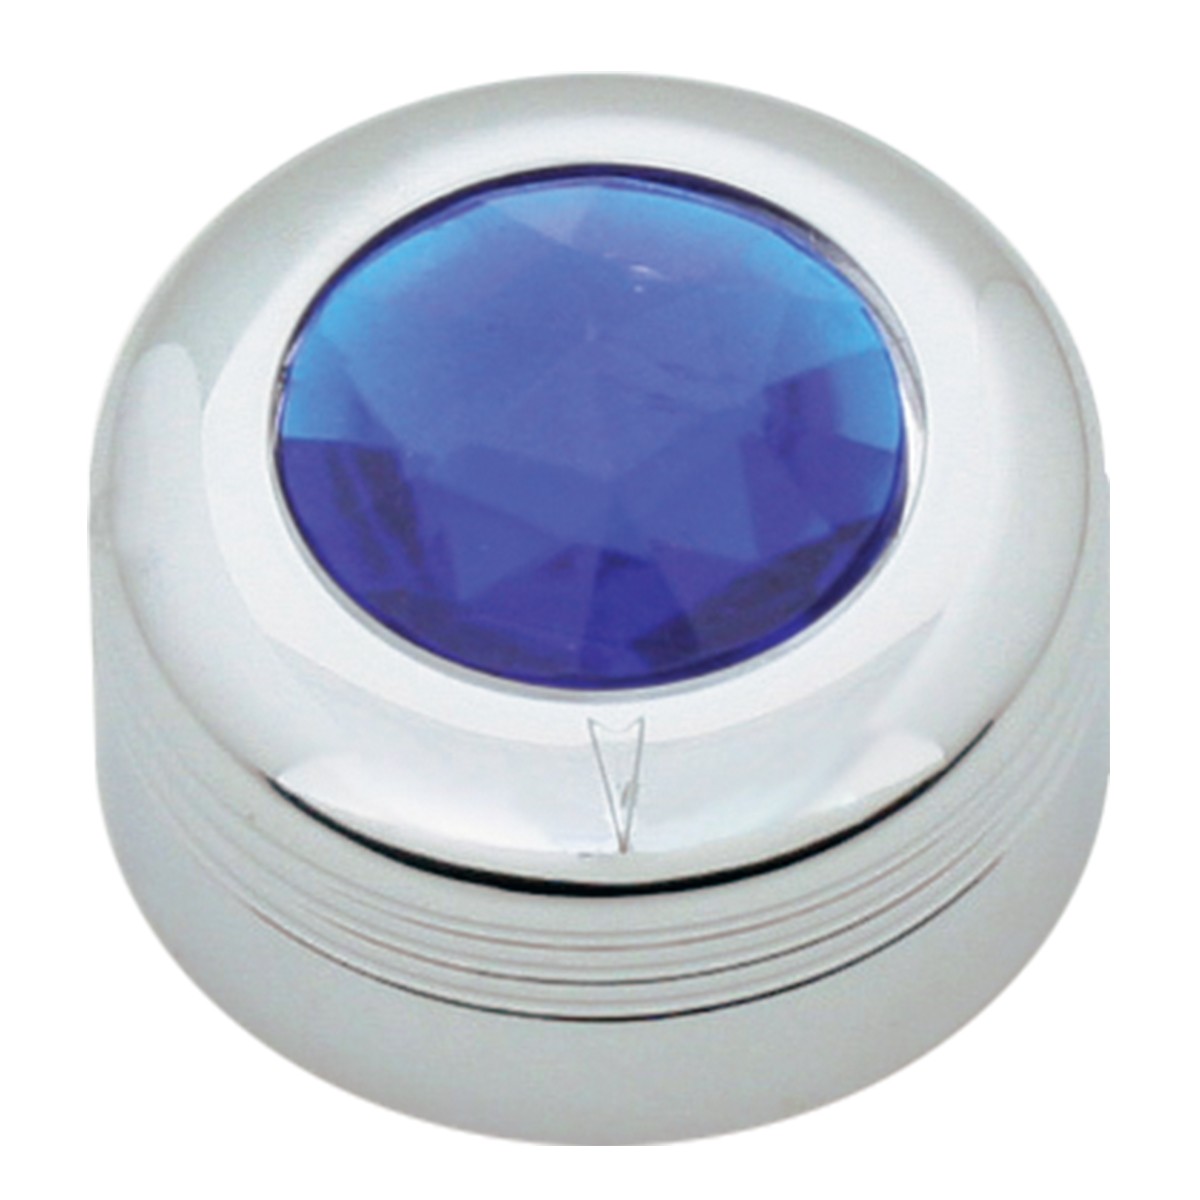 Chrome Plastic A/C Knob w/ Blue Plastic Crystal for Pete